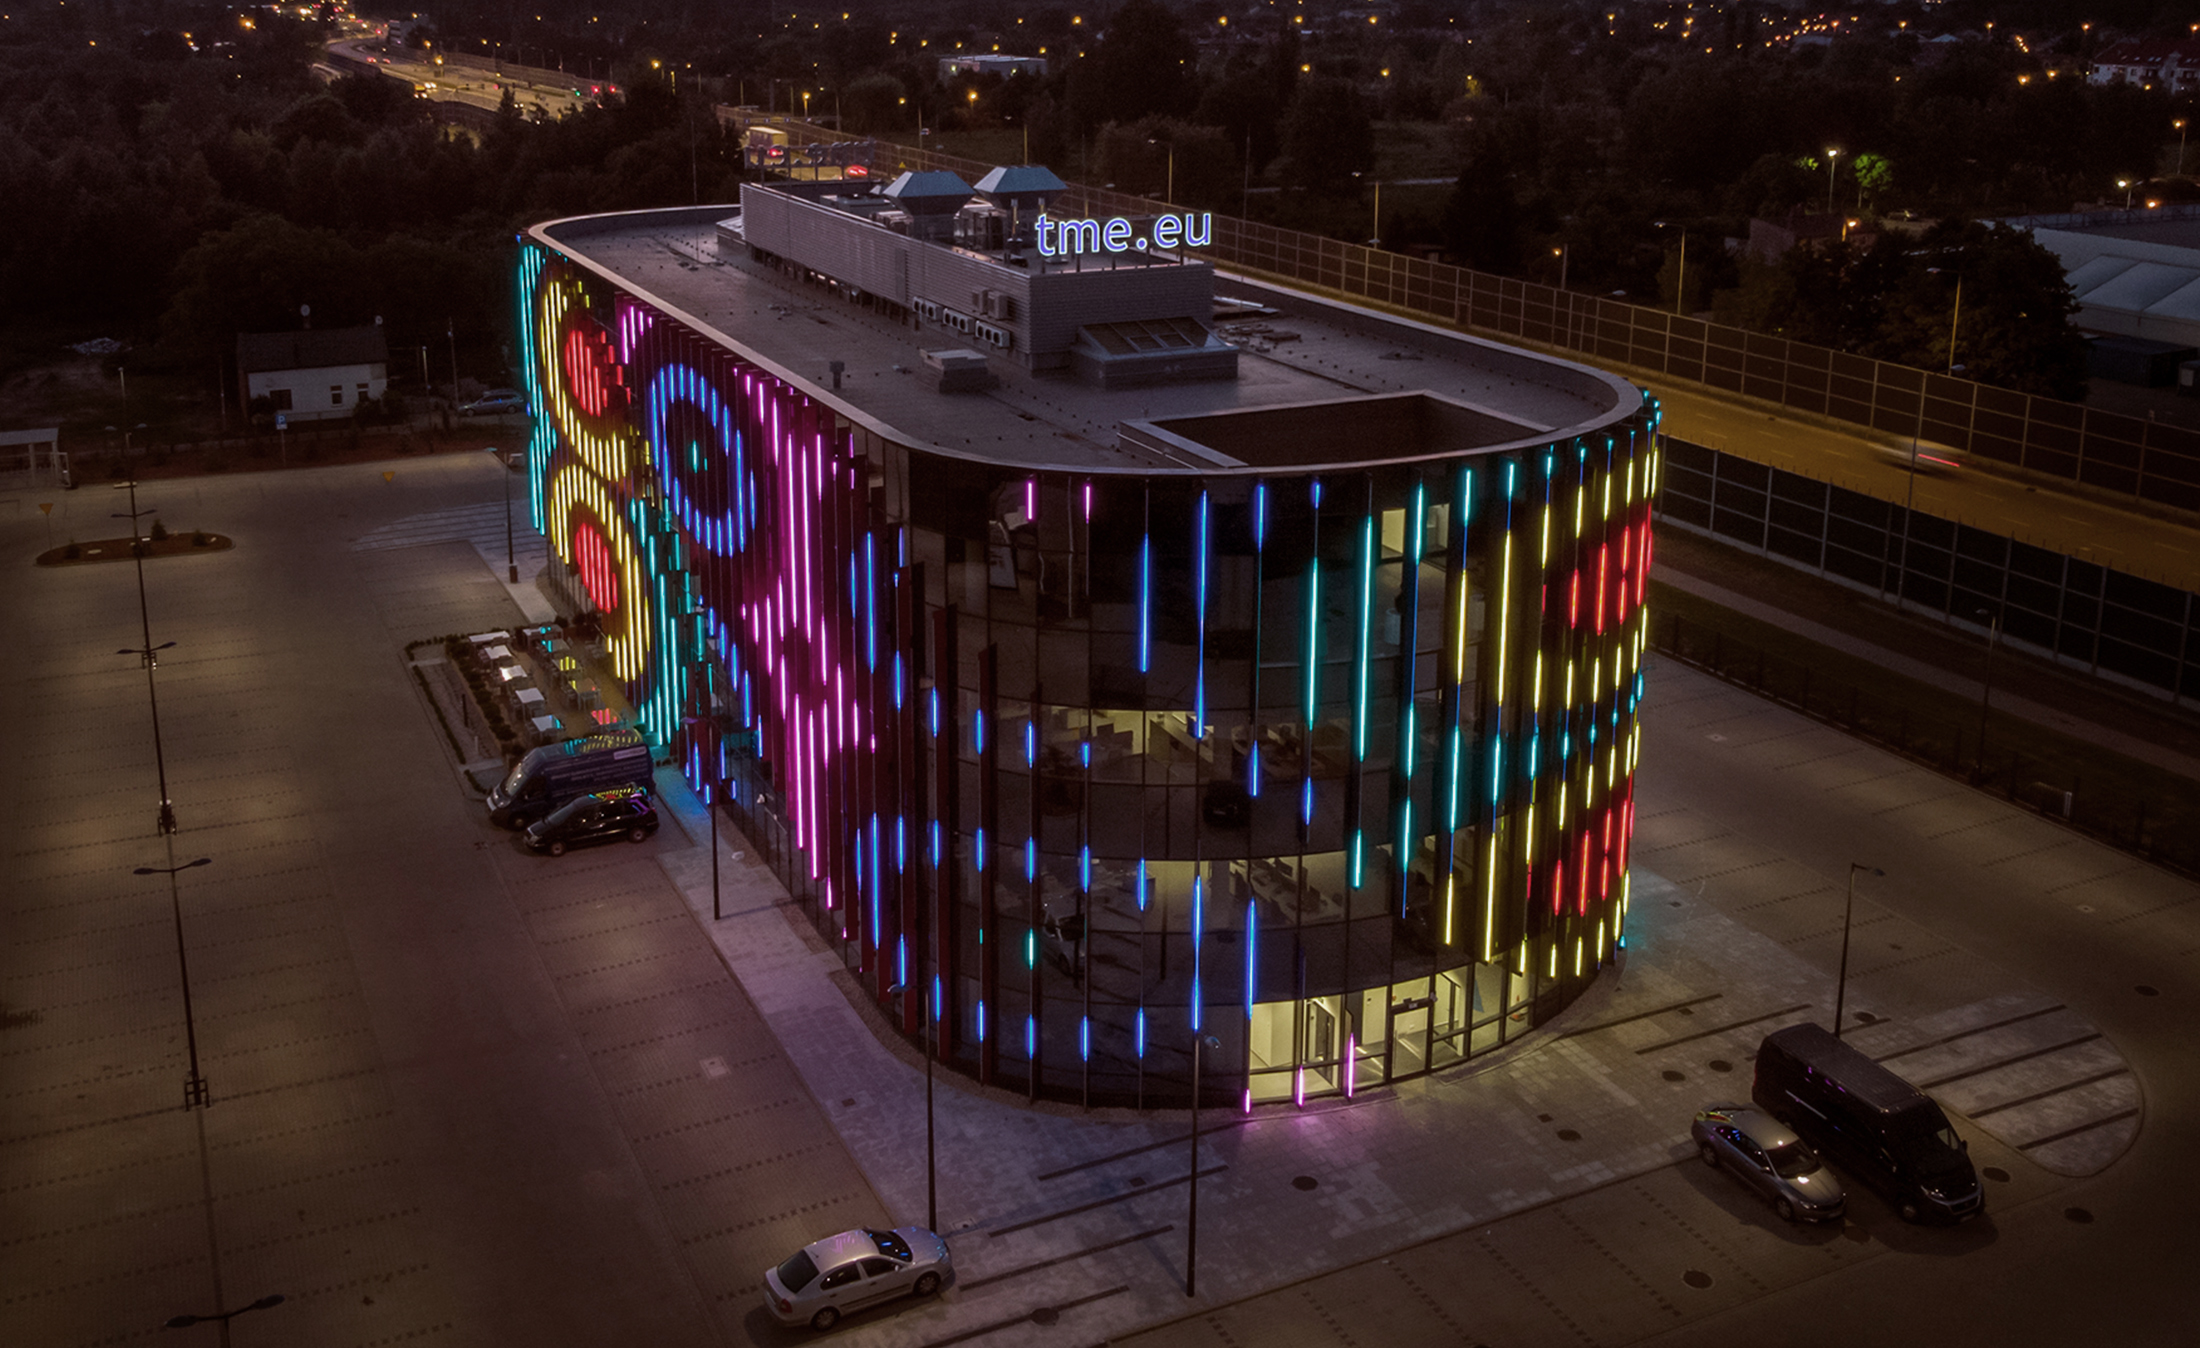 tme-headquarters-image